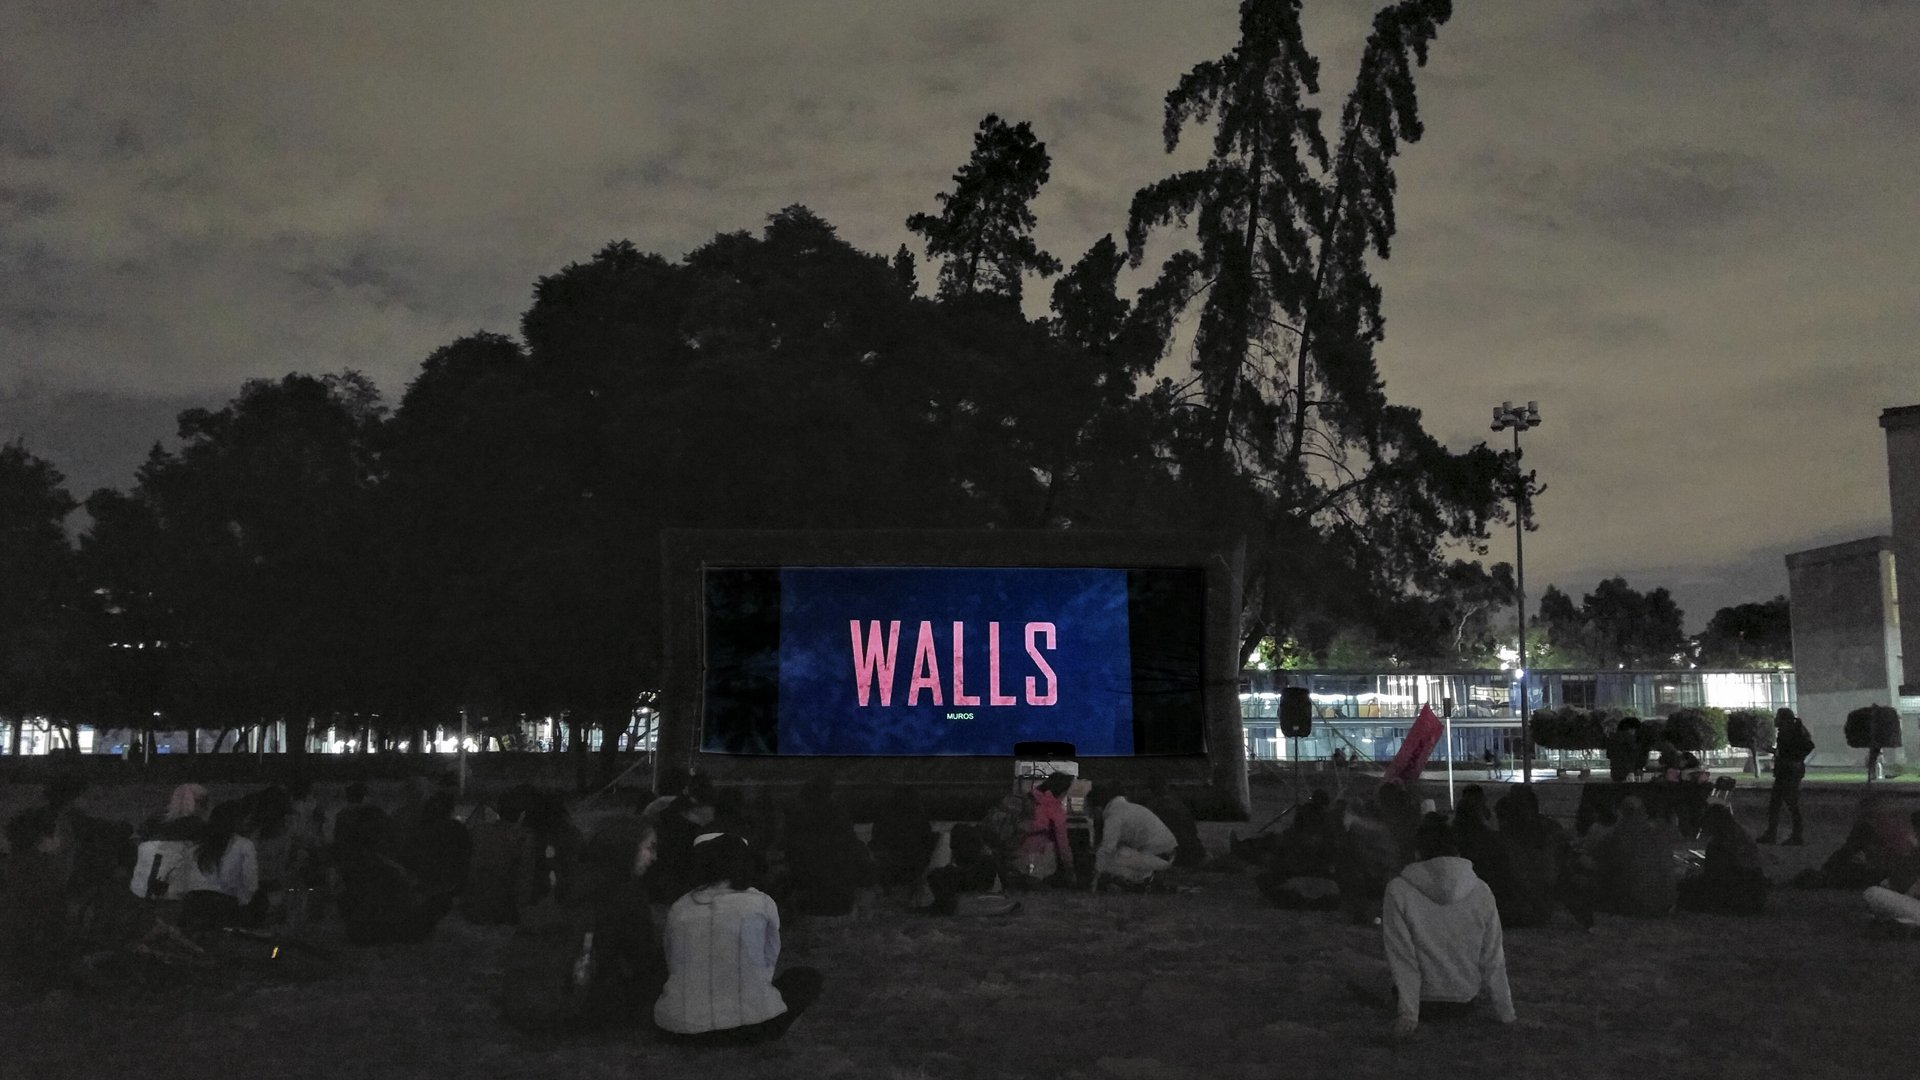 WALLS. ARENA filmproducer's documentary film